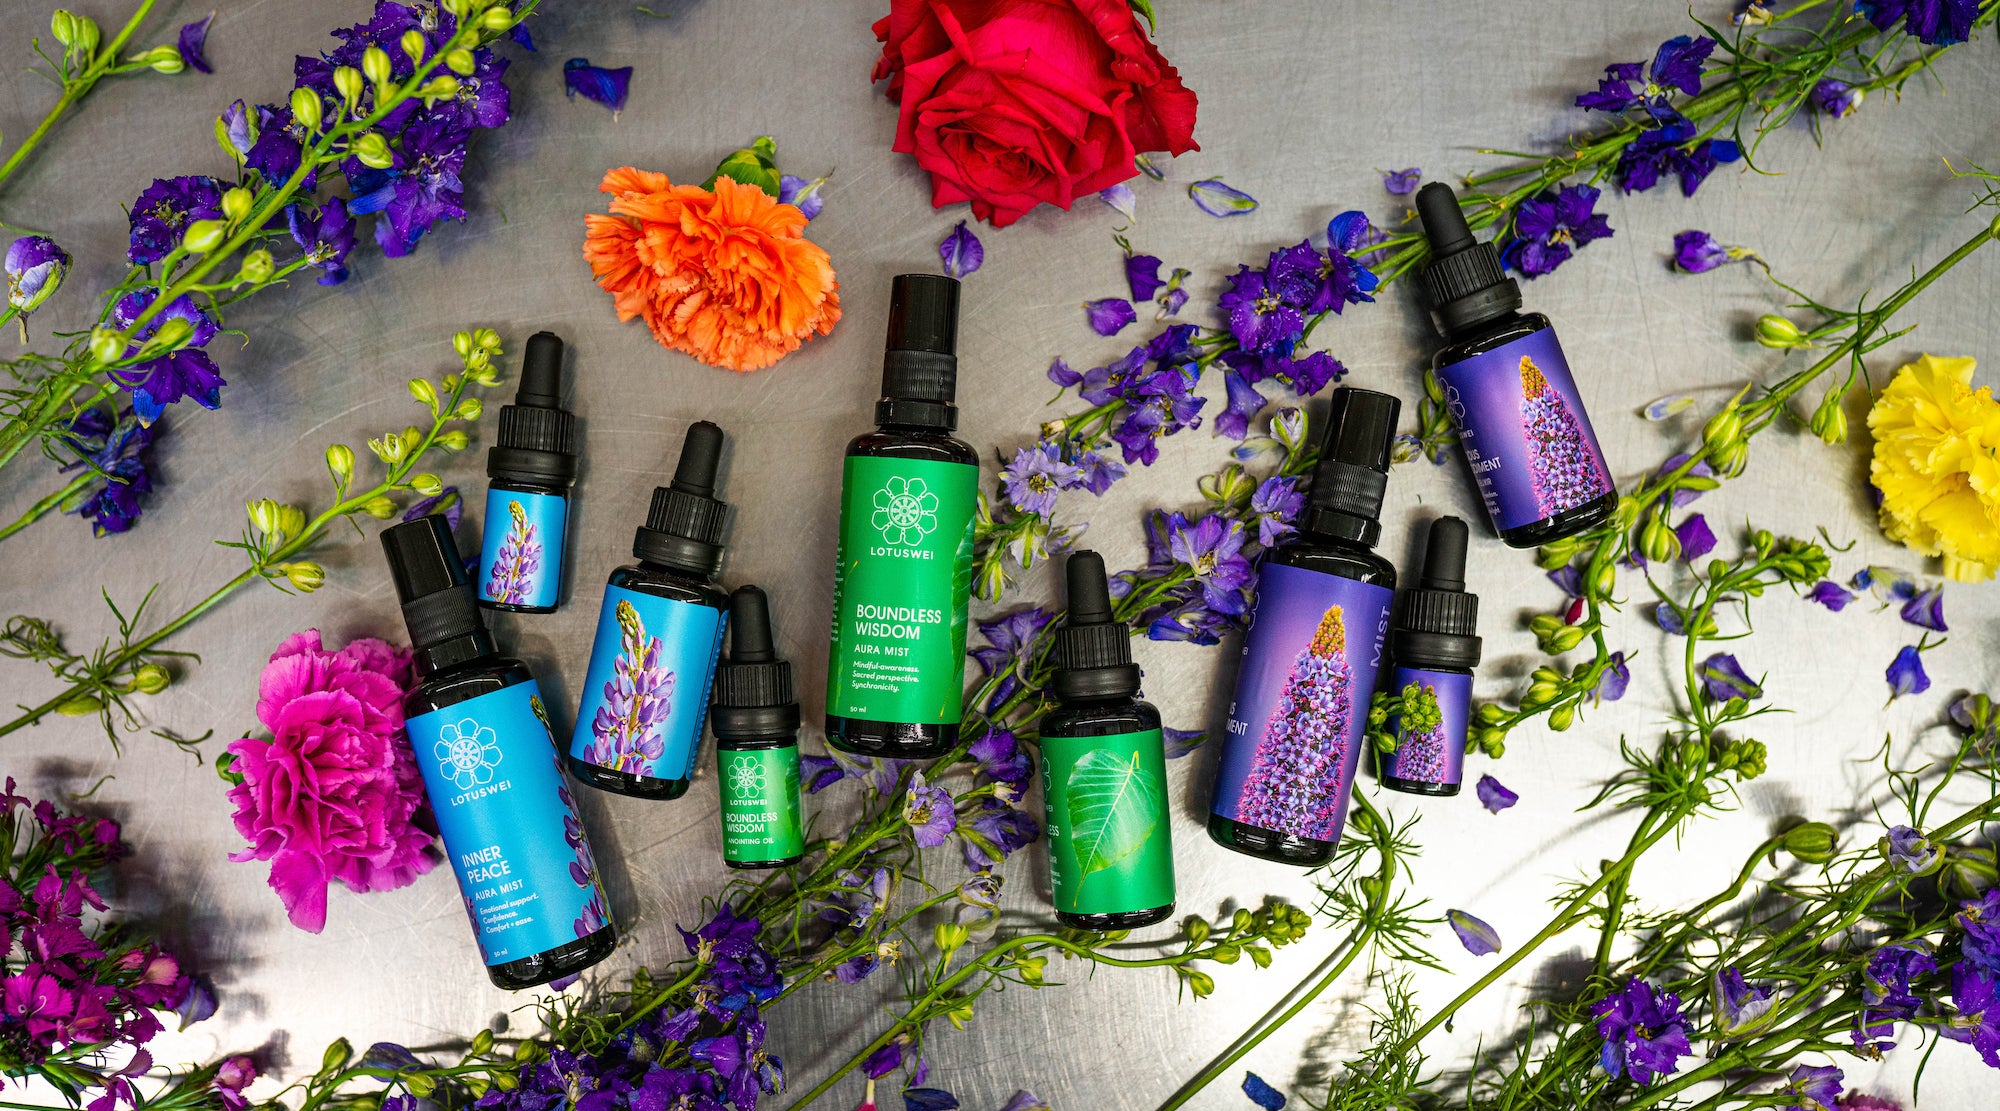 HOW TO WORK WITH FLOWER ESSENCE *VERTICALS*